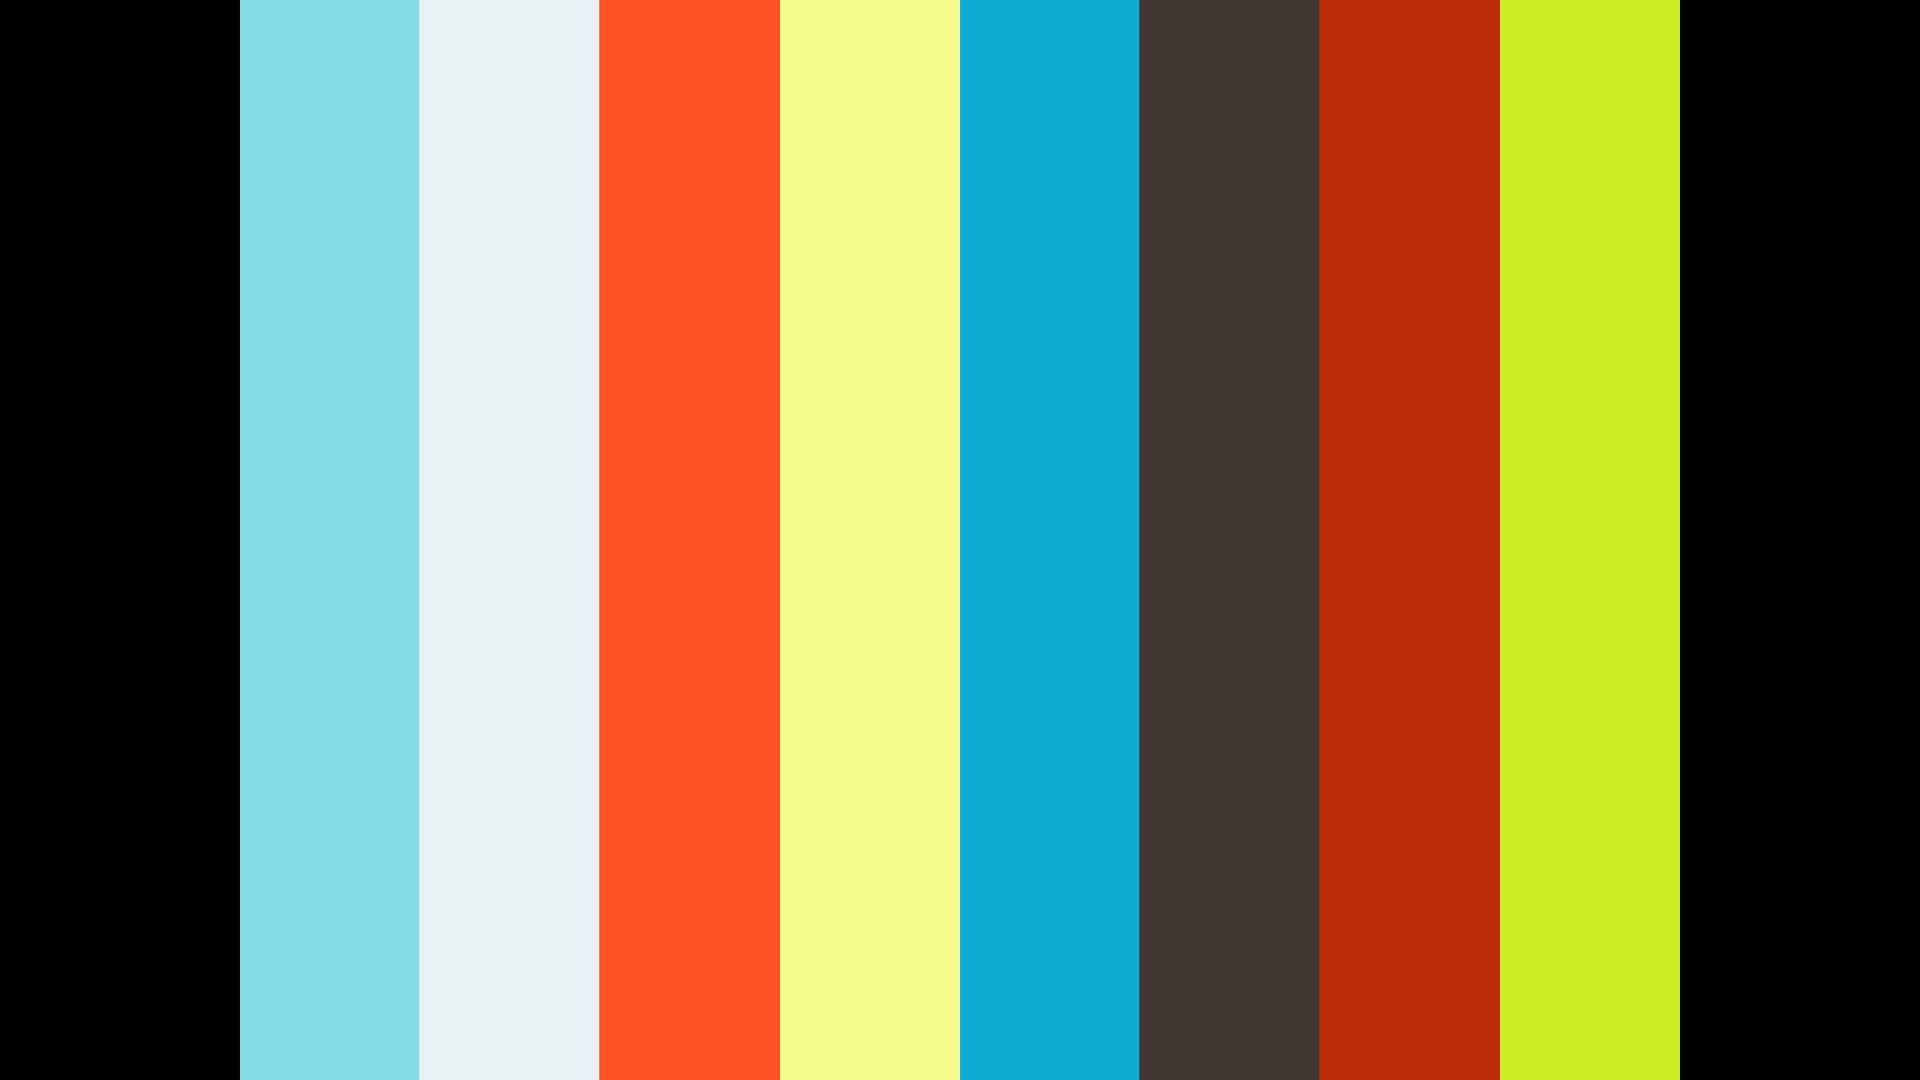 Robert Berkun: Construction